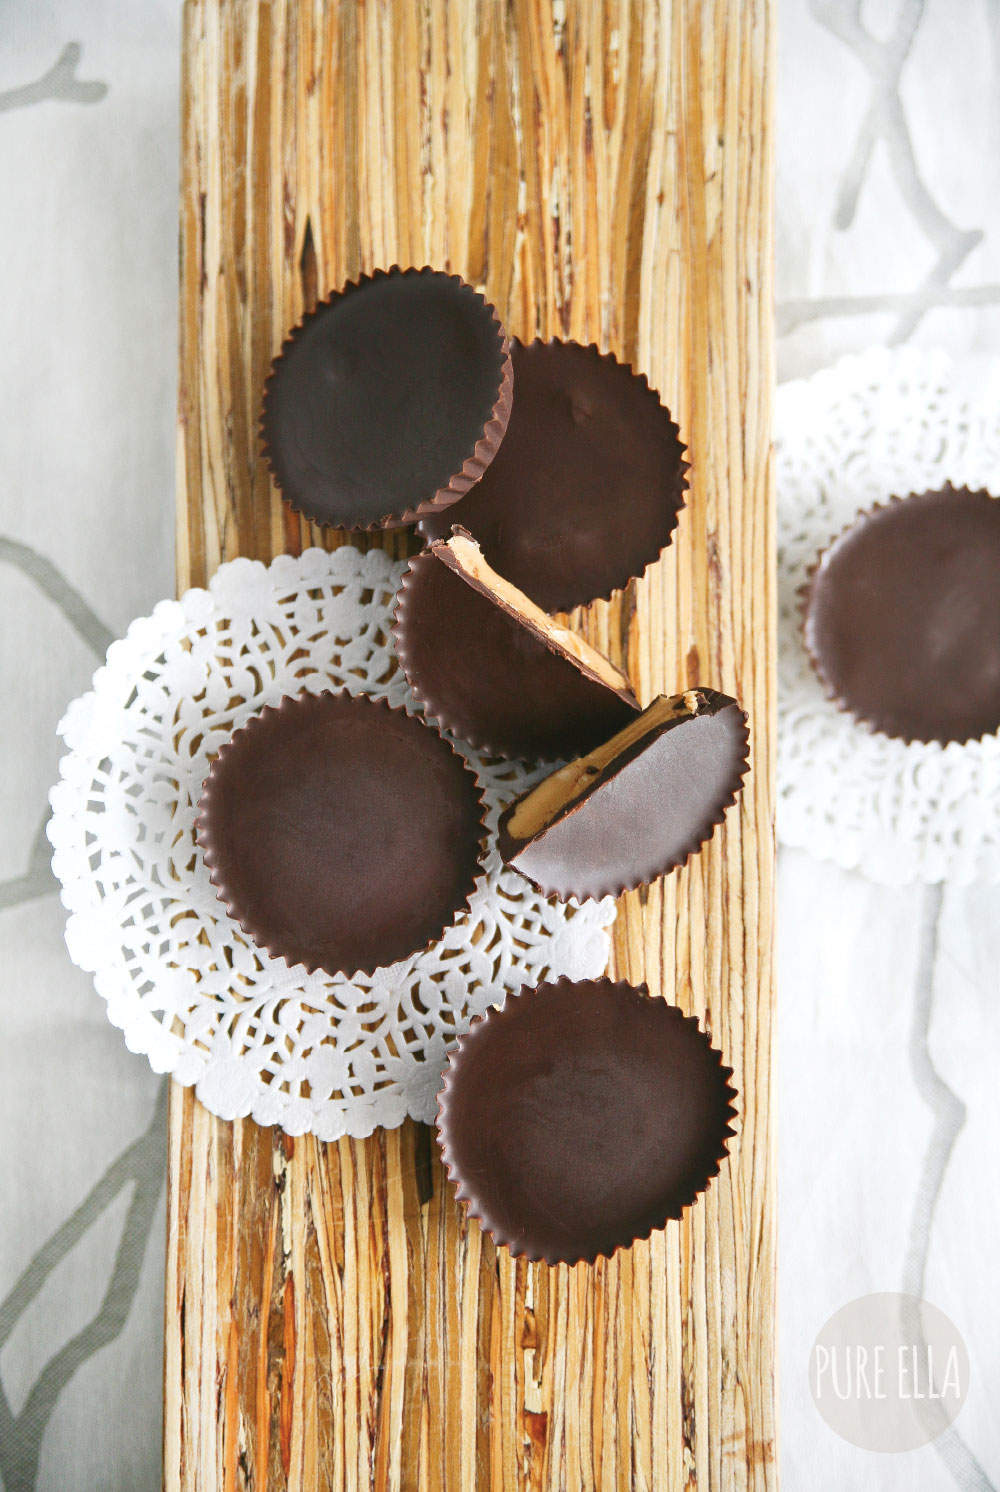 Pure-Ella-Vegan-Peanut-Butter-Cups4